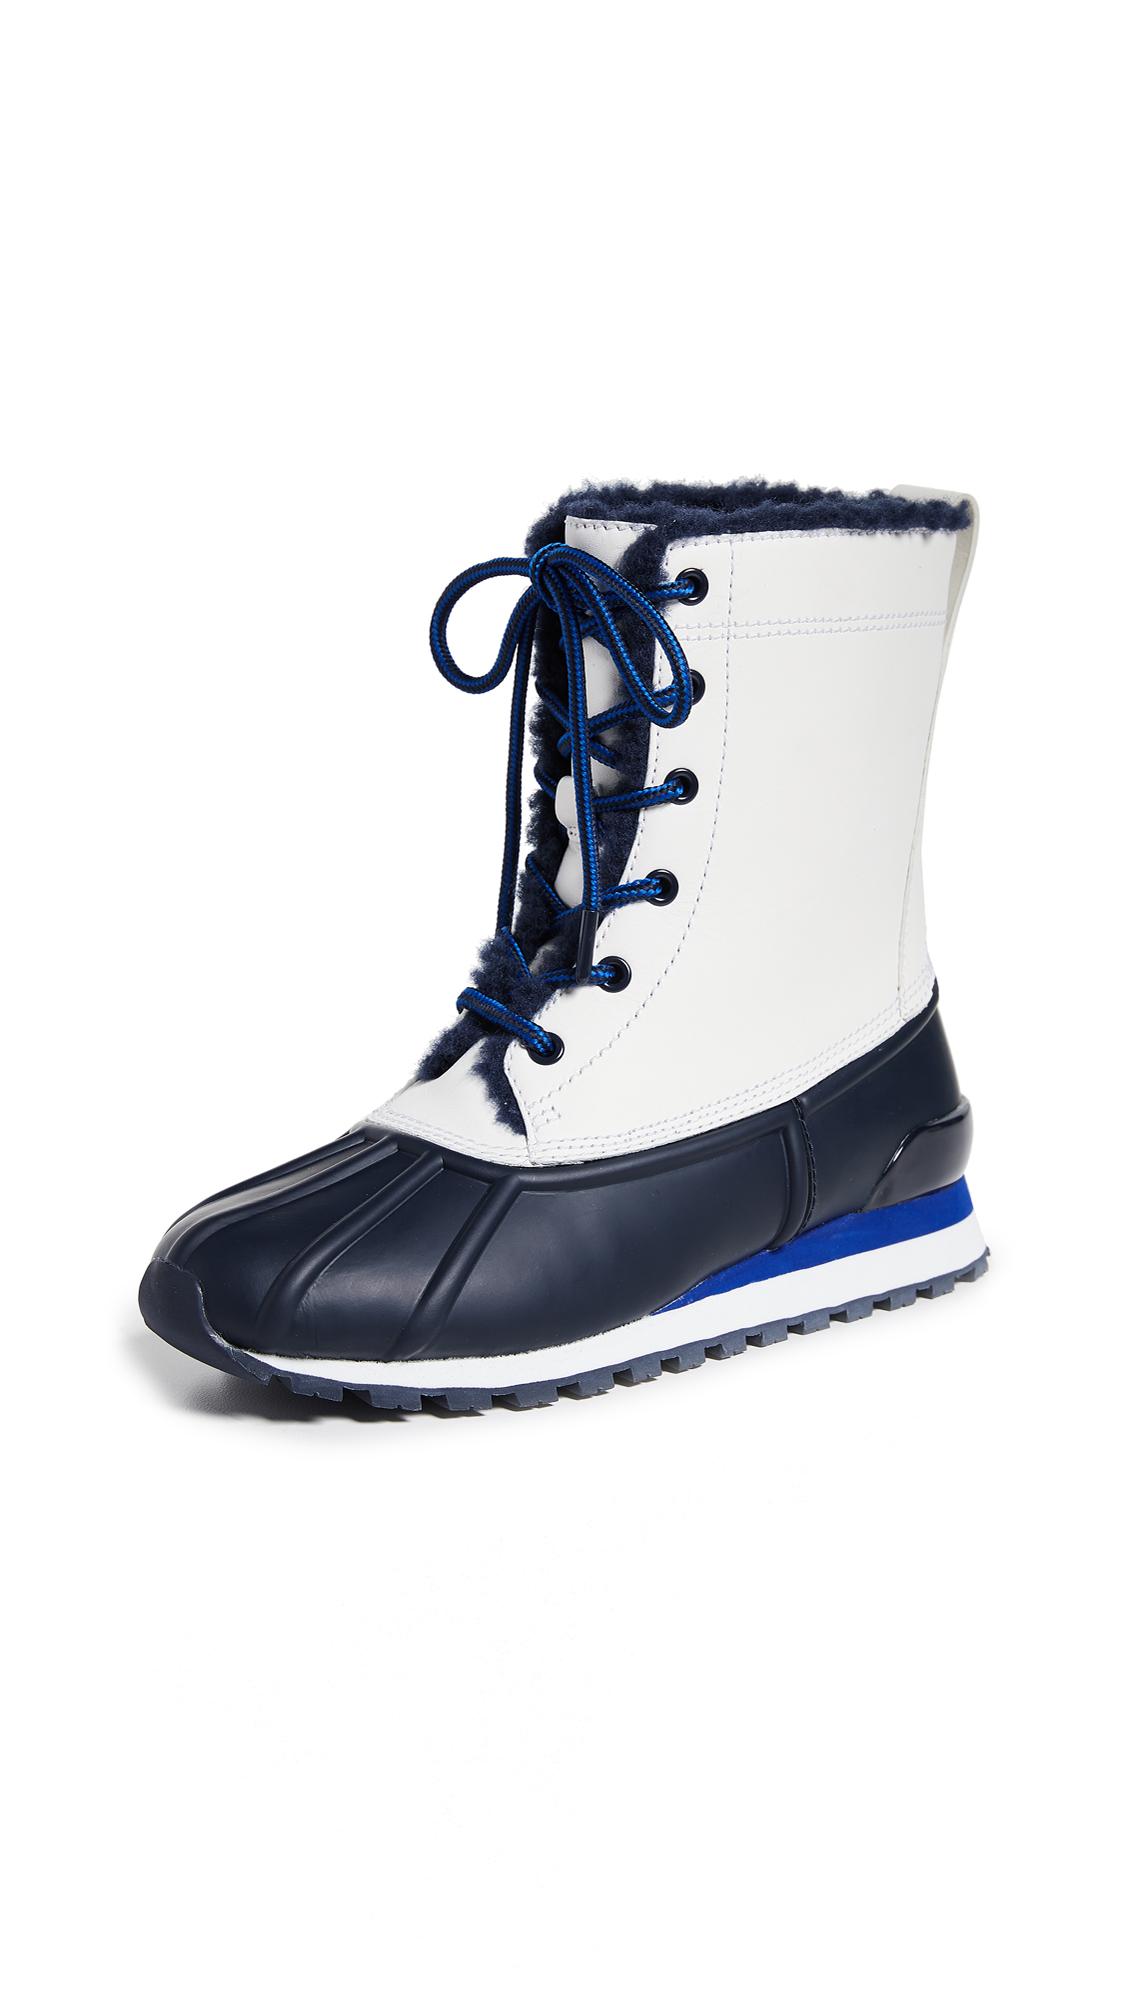 Tory Sport Duck Boots - Bright Navy/Snow White